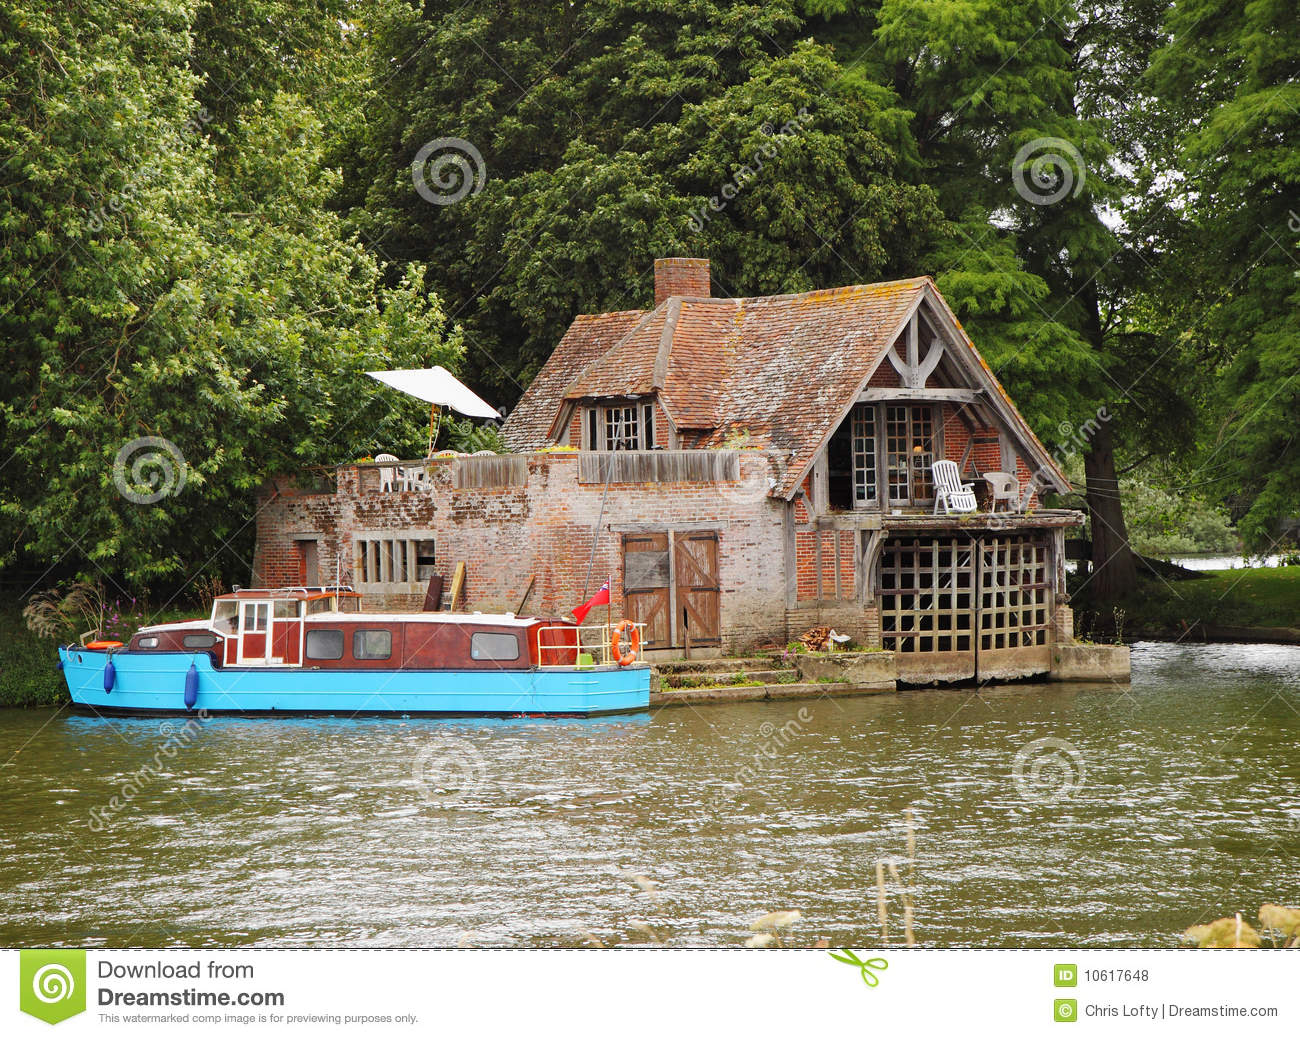 Boathouse and Moorings on the River Thames